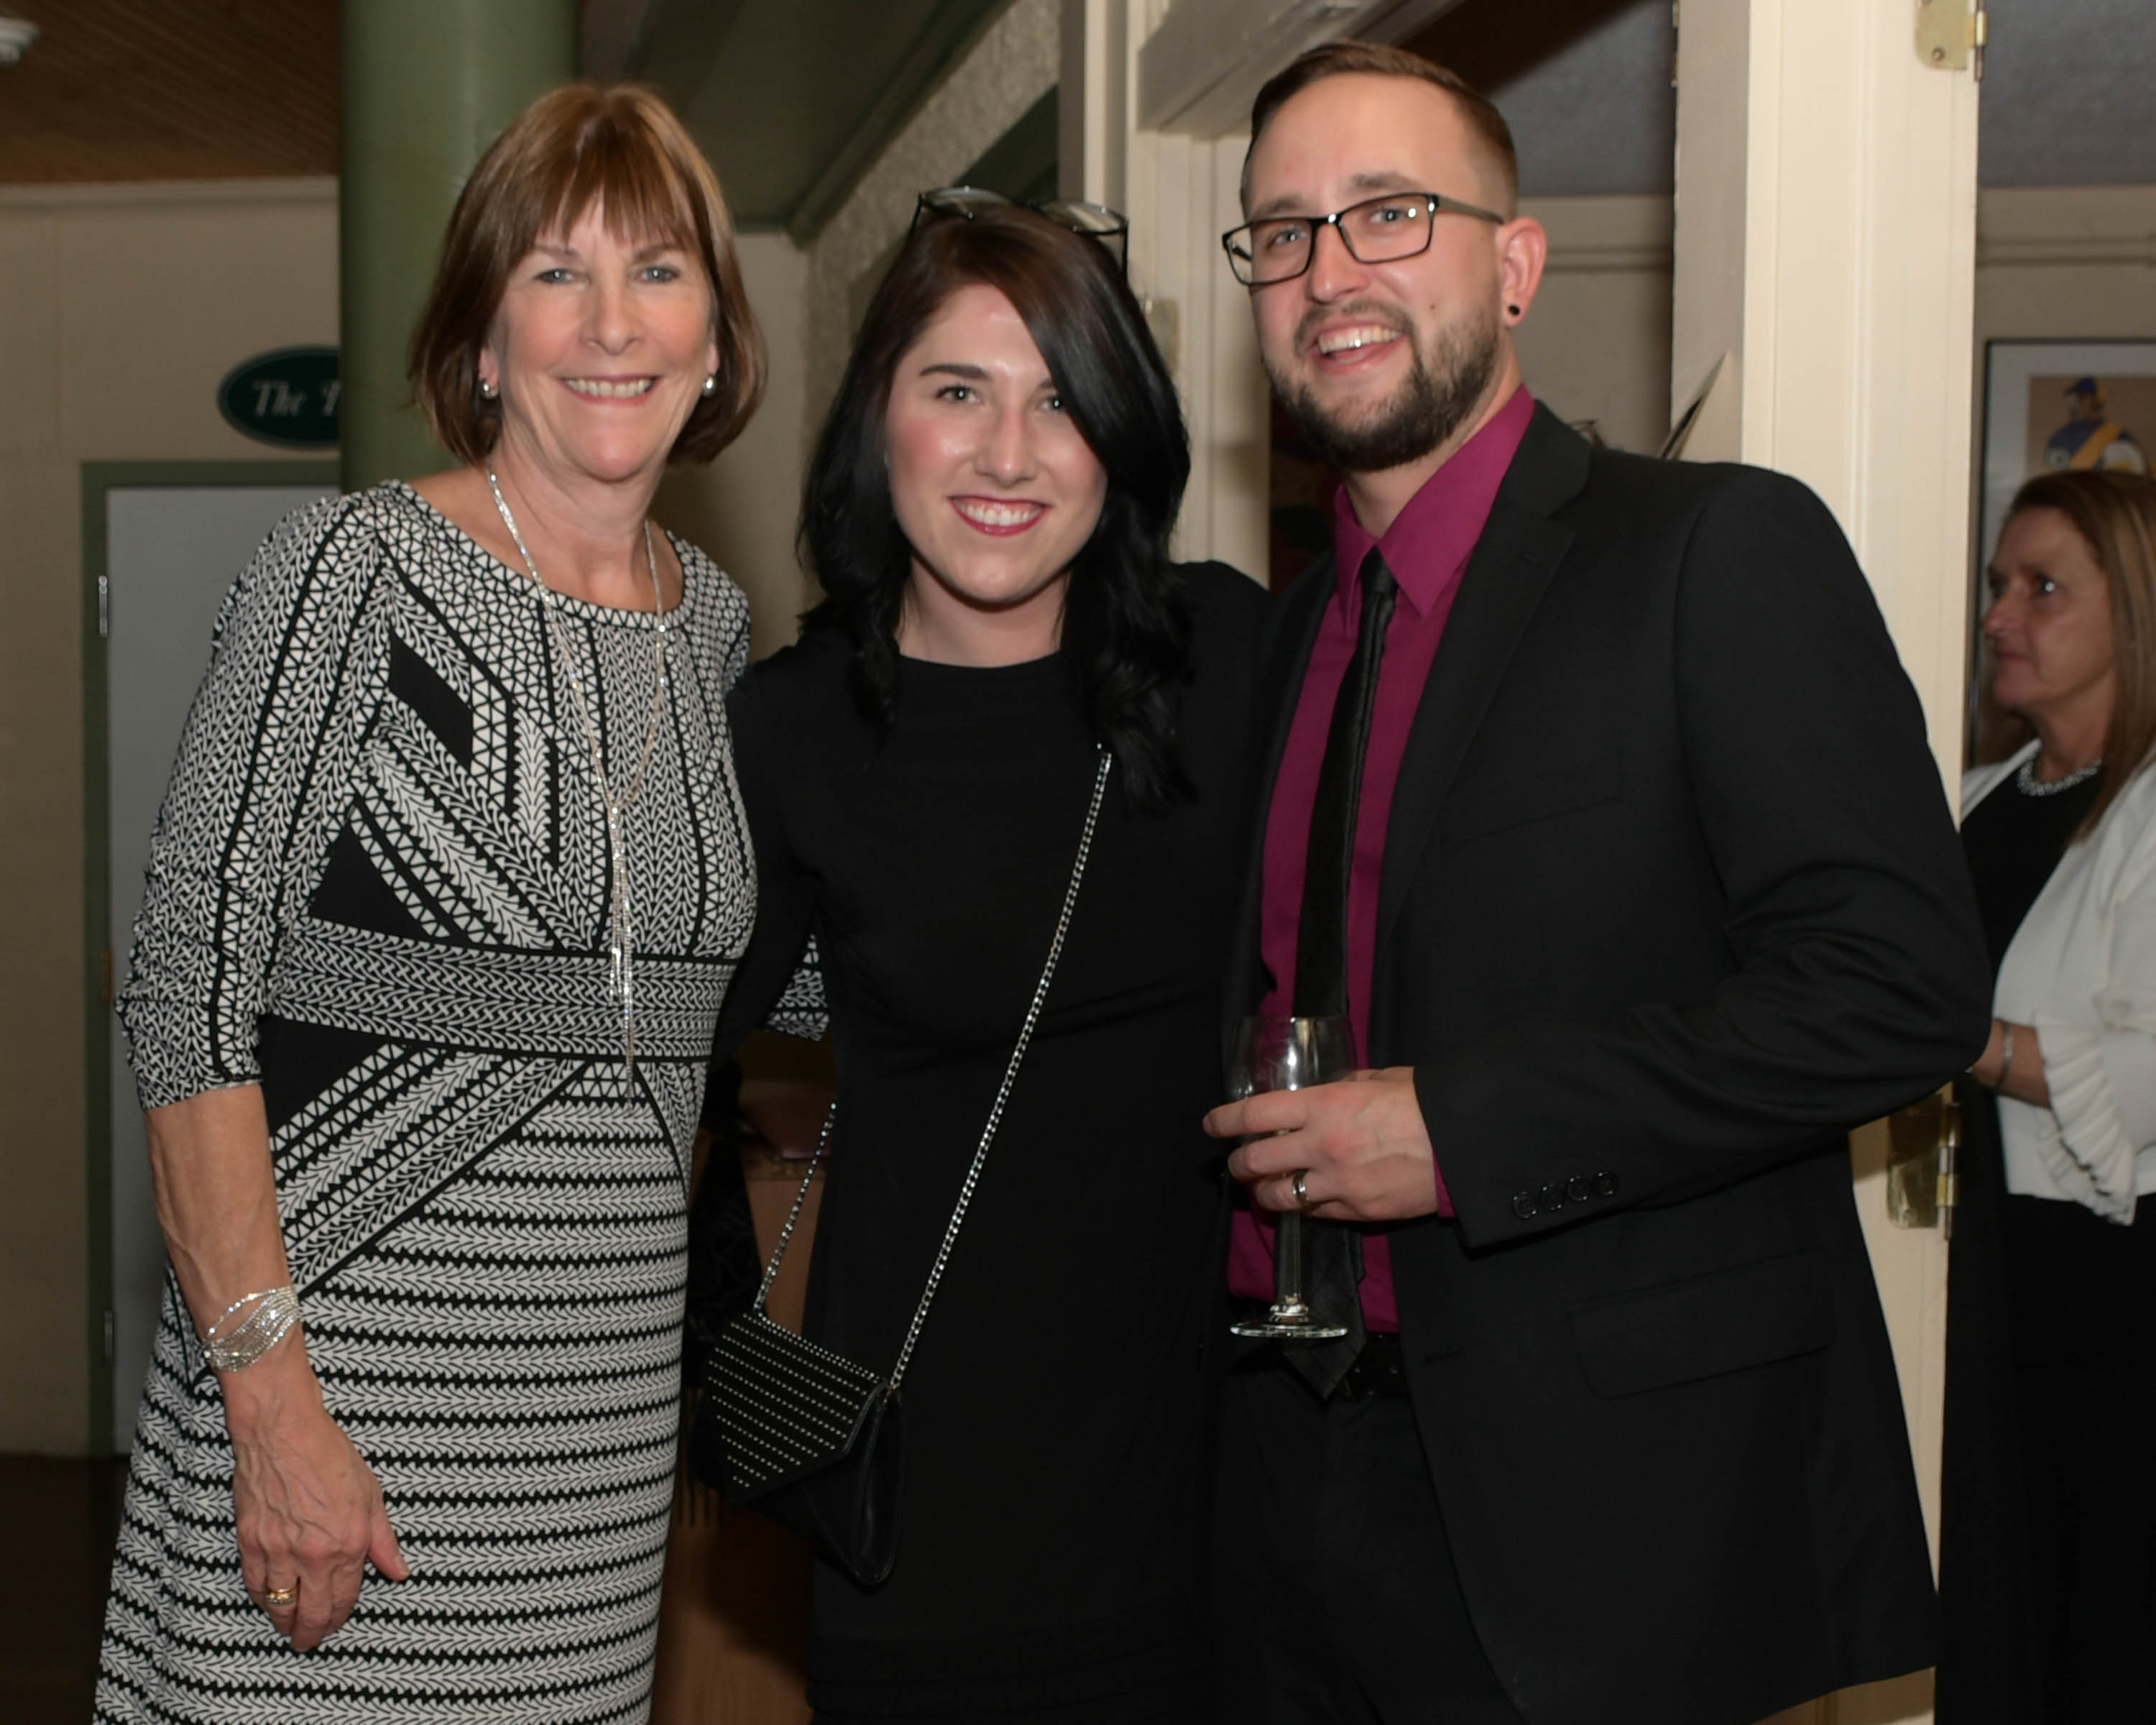 Vin Le Soir to benefit AIM Services, Inc. group of three people at AIM wine tasting